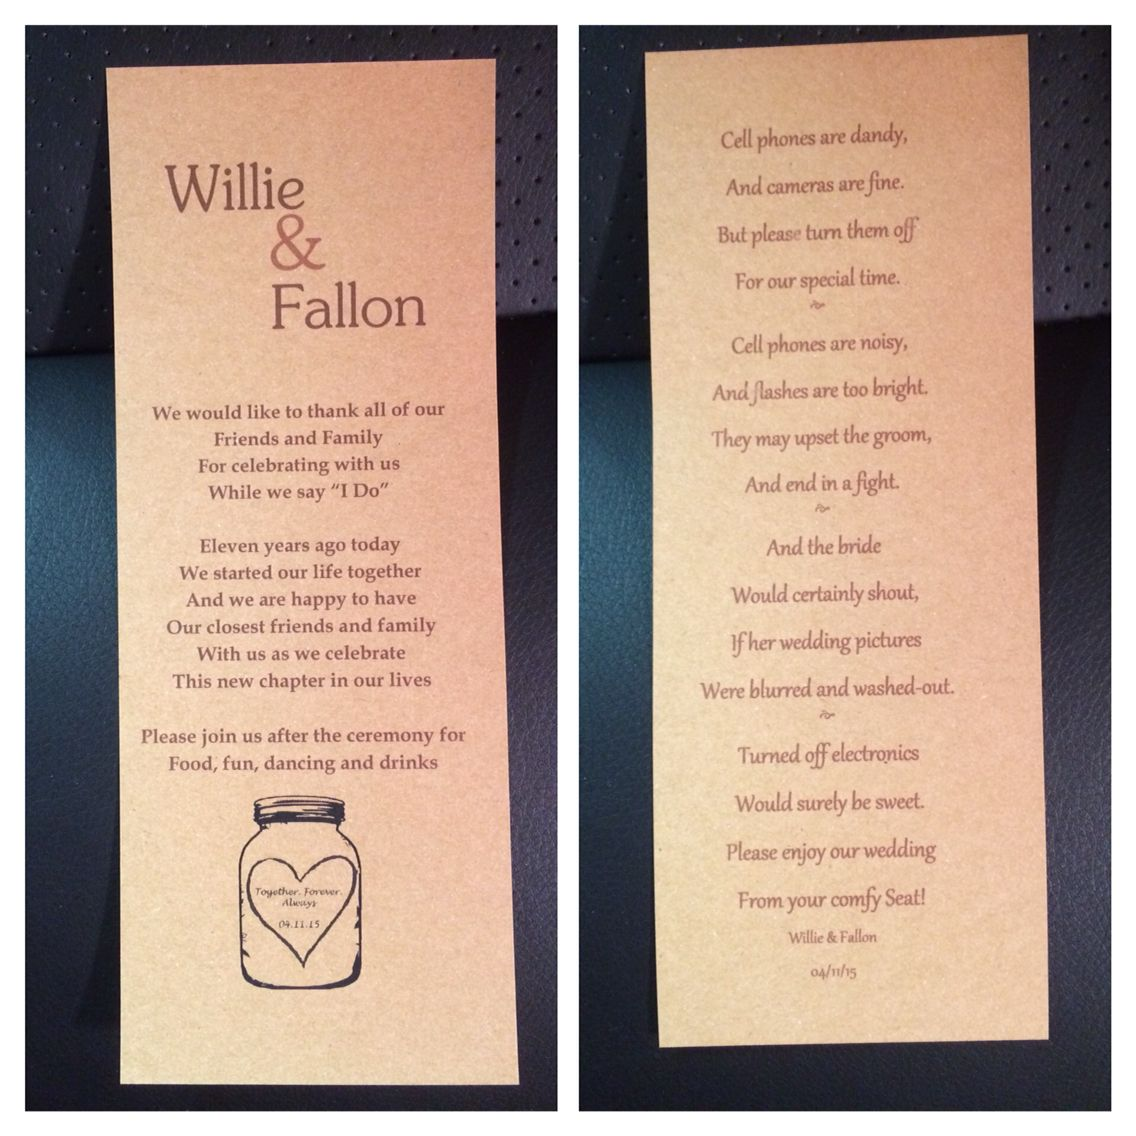 Wedding Program Made From 85x11 Cardstock Walmart I Printed Each Side With 3